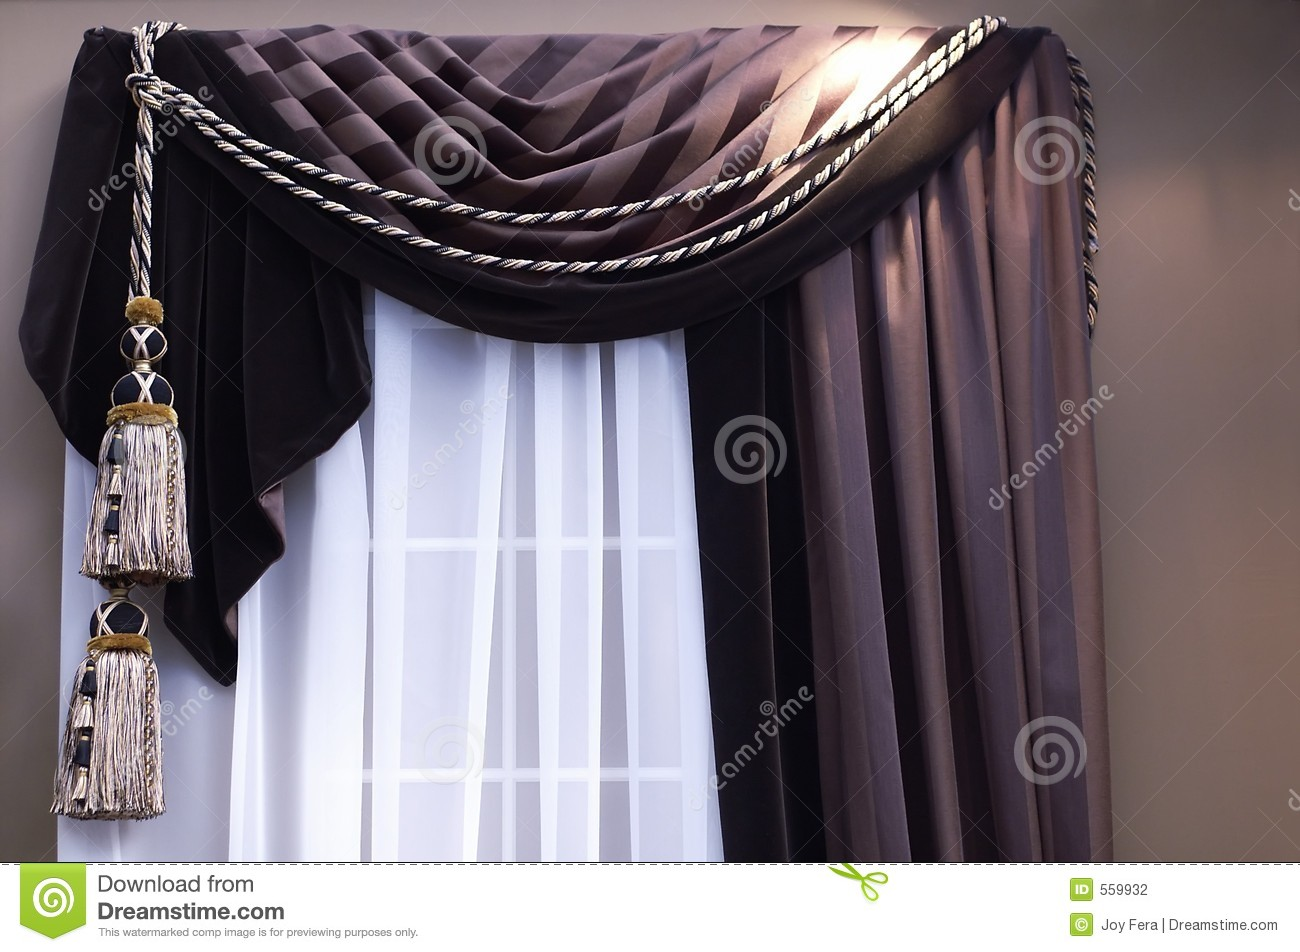 74 Curtain Swag Photos Free Royalty Free Stock Photos From Dreamstime